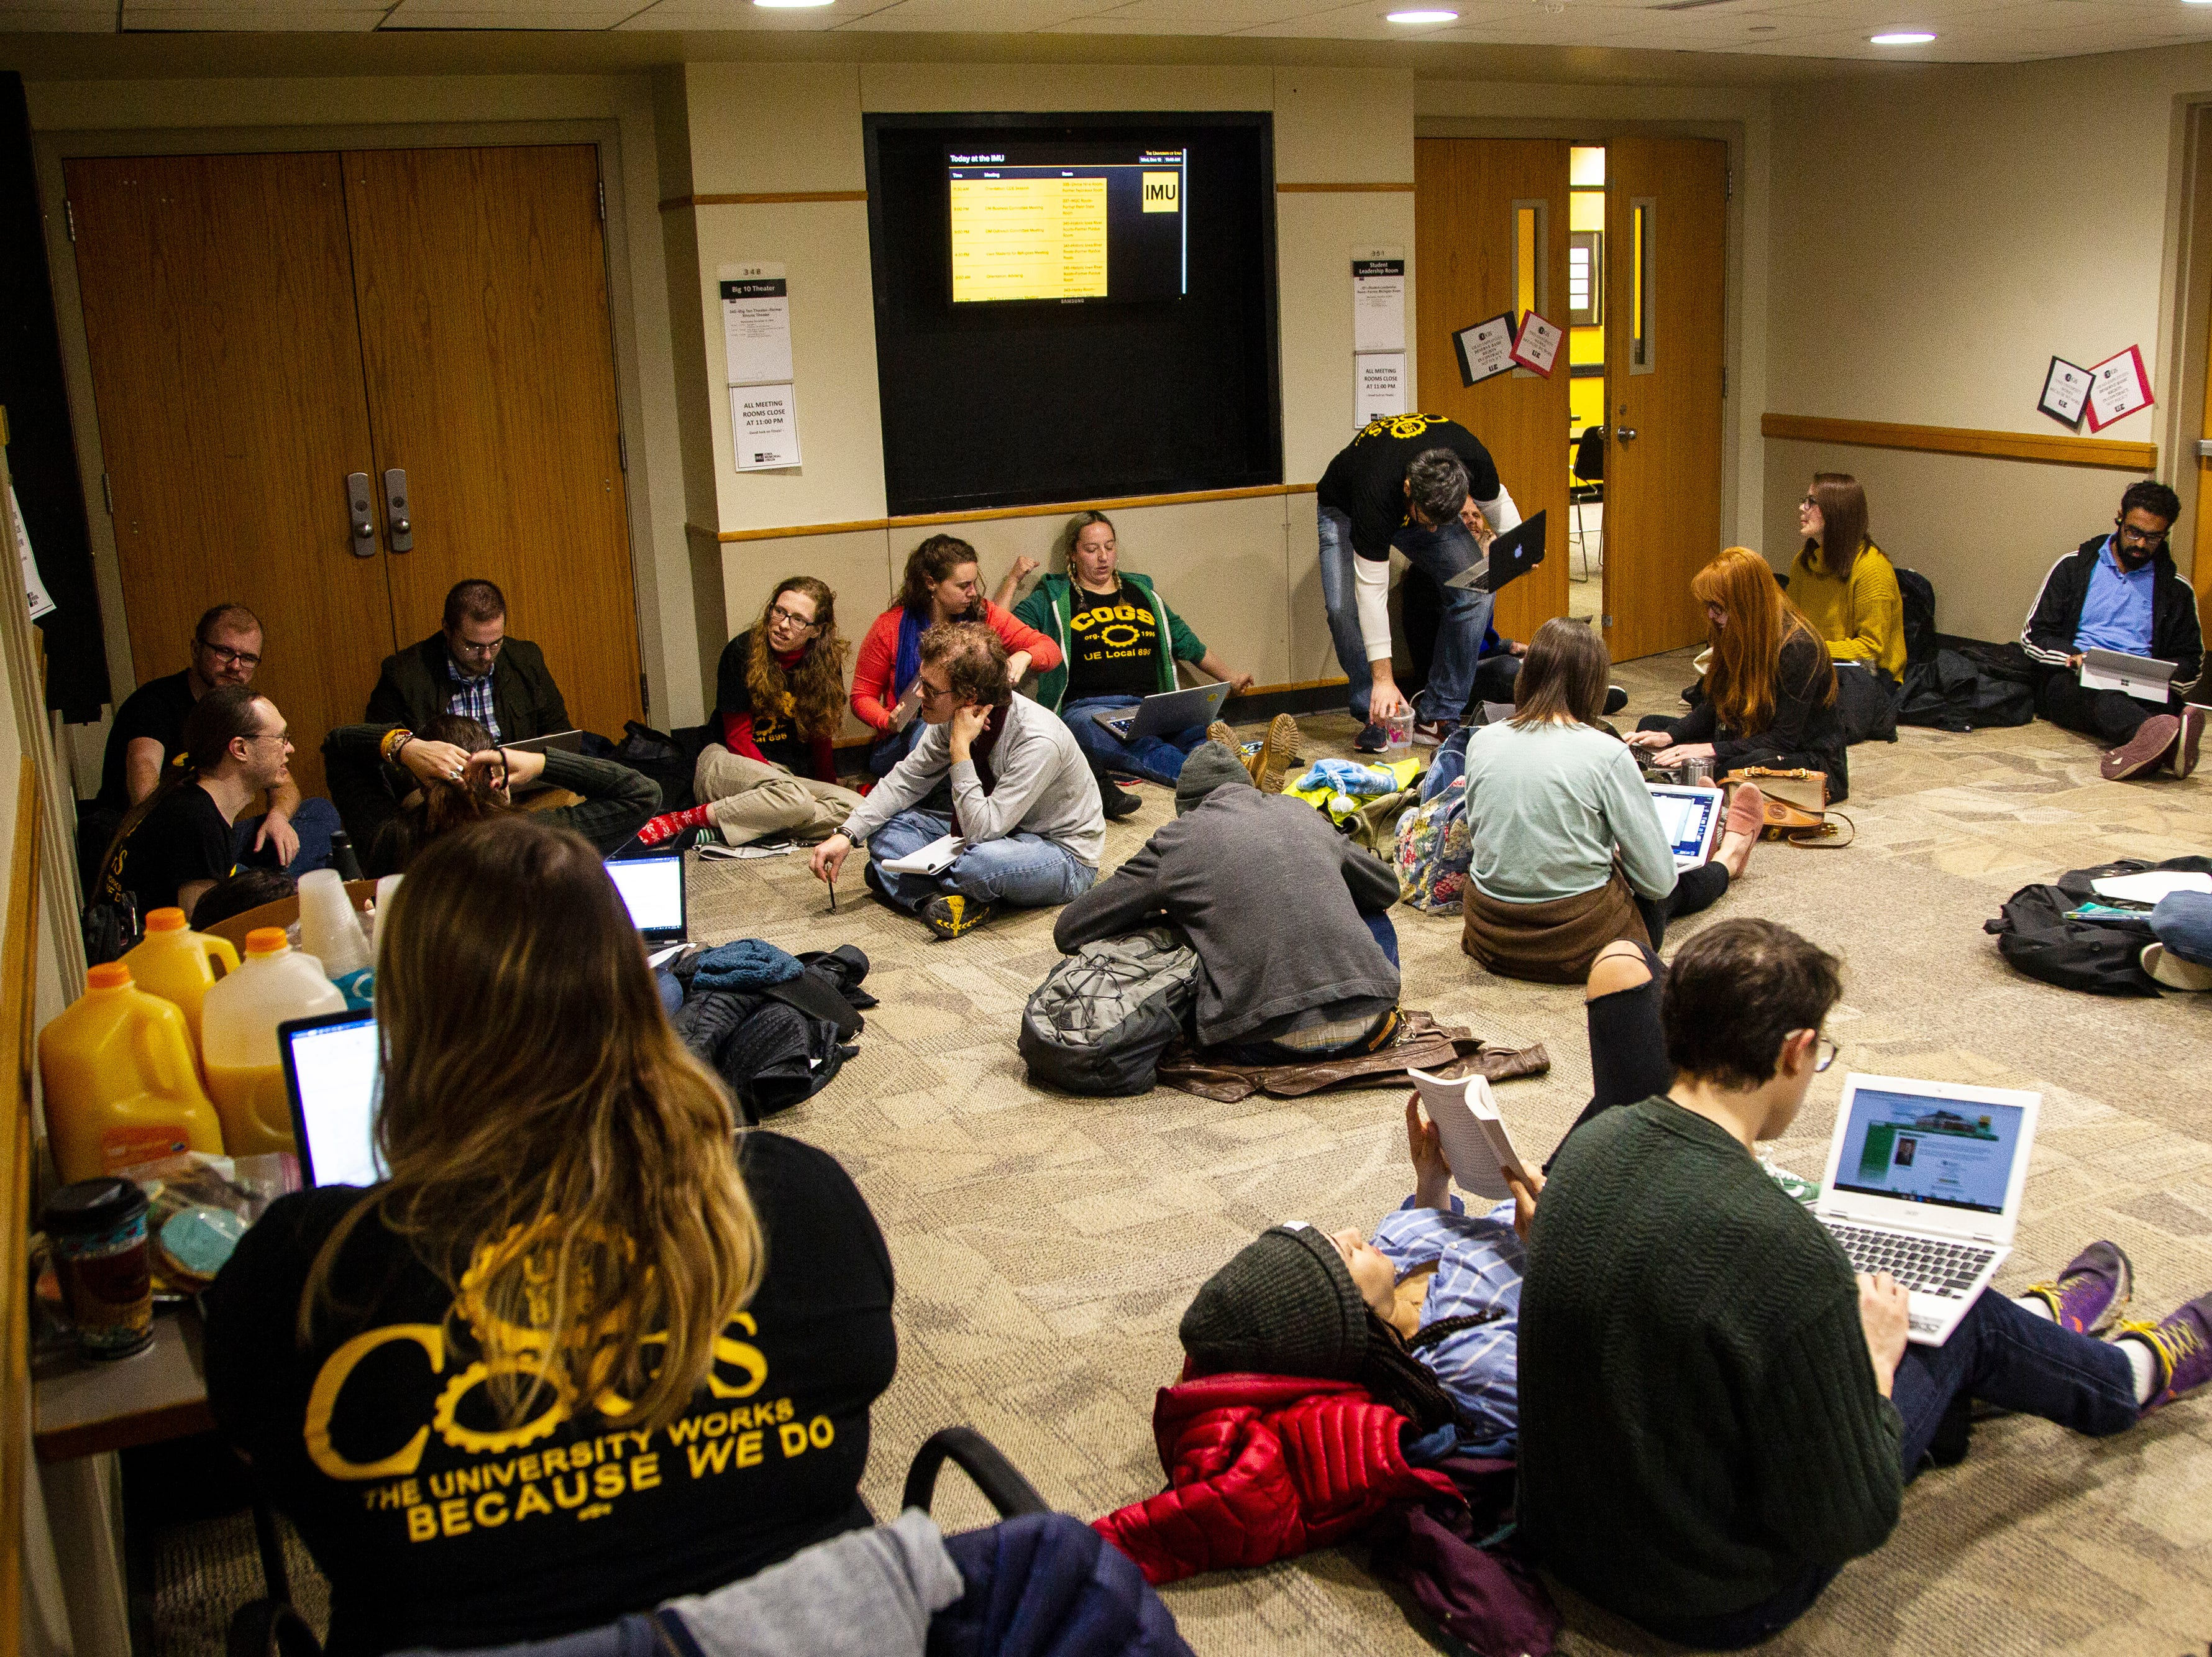 Campaign to Organize Graduate Student members stage a sit-in before a contract proposal from the Iowa Board of Regents on Wednesday, Dec. 12, 2018, at the Iowa Memorial Union in Iowa City. The graduate students sat in the hallway grading work for two hours before meeting the Regents' representatives.